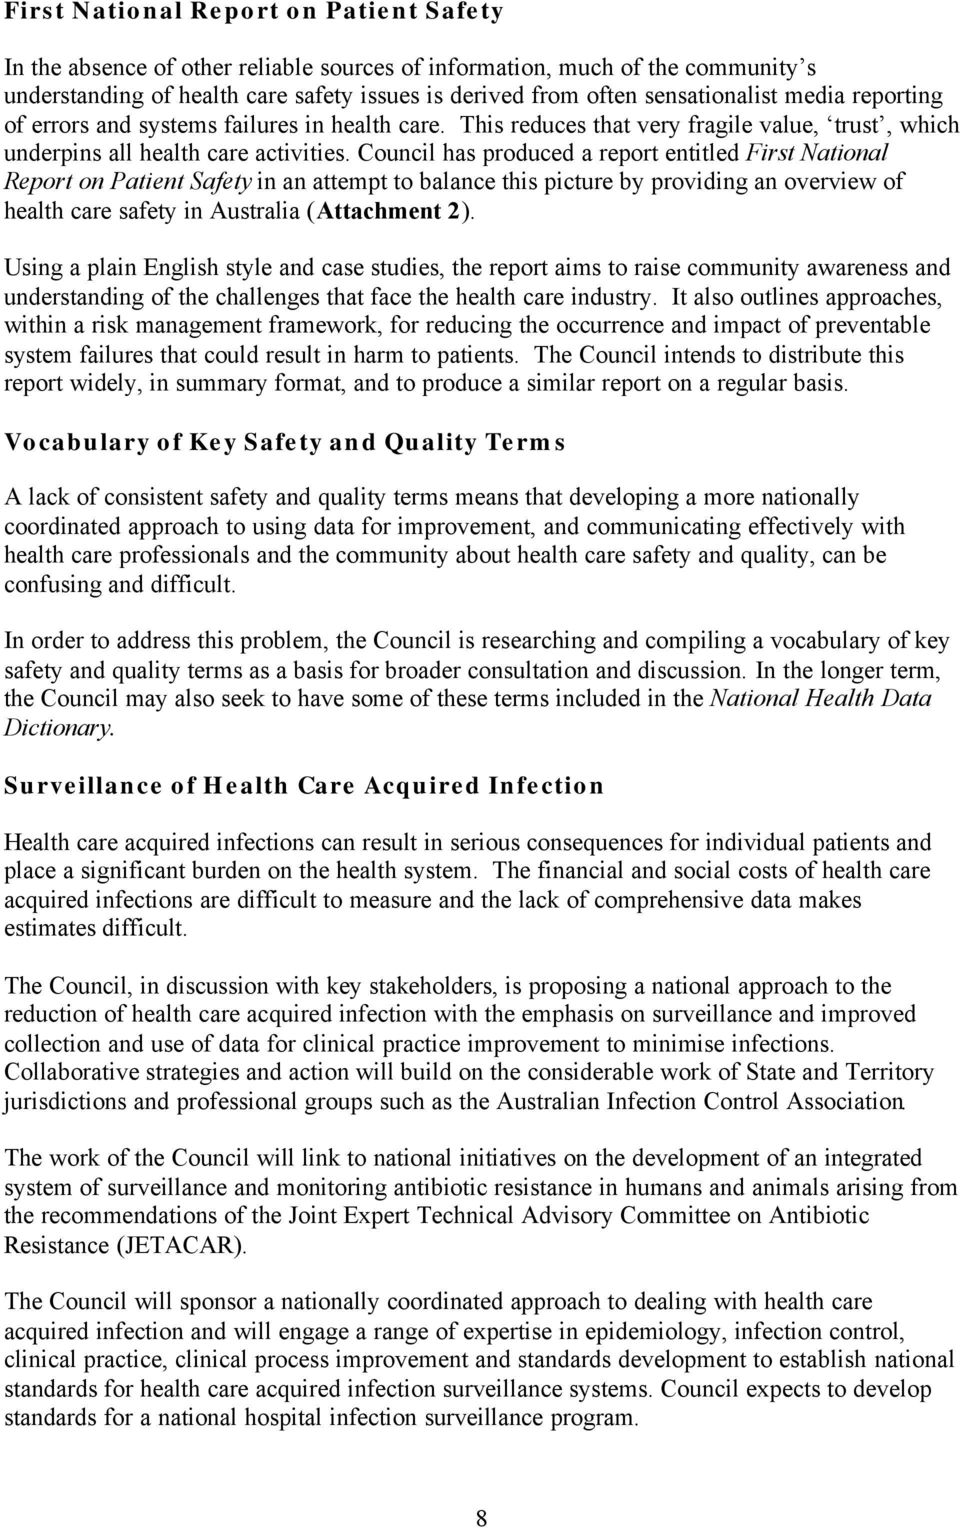 Council has produced a report entitled First National Report on Patient Safety in an attempt to balance this picture by providing an overview of health care safety in Australia (Attachment 2).